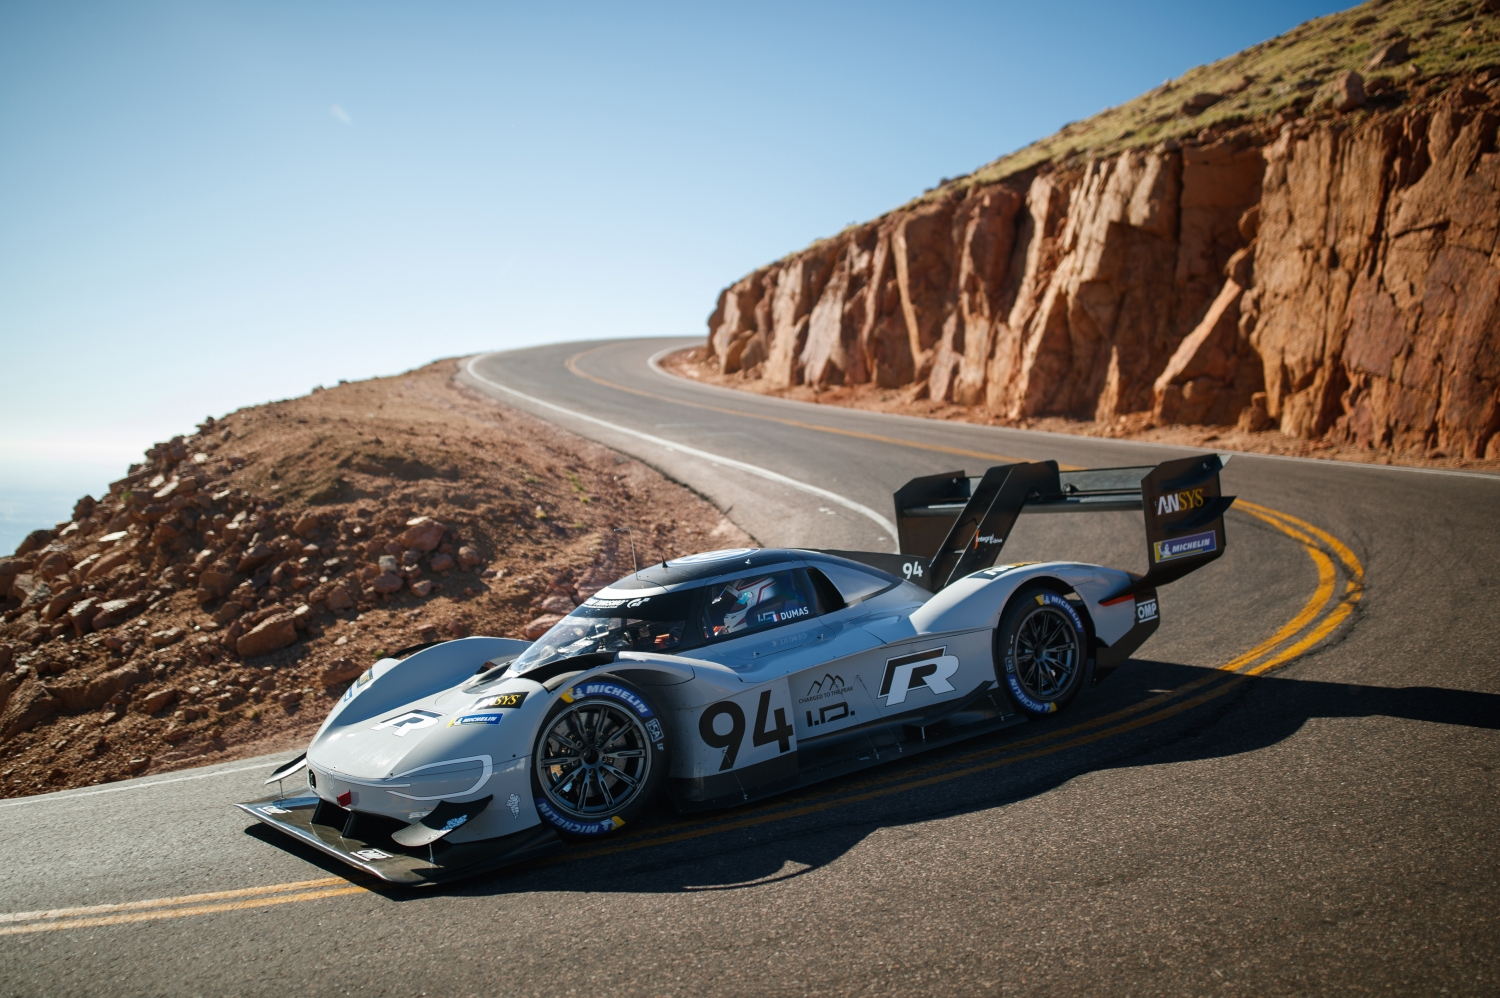 Volkswagen Makes History at Pikes Peak Climb